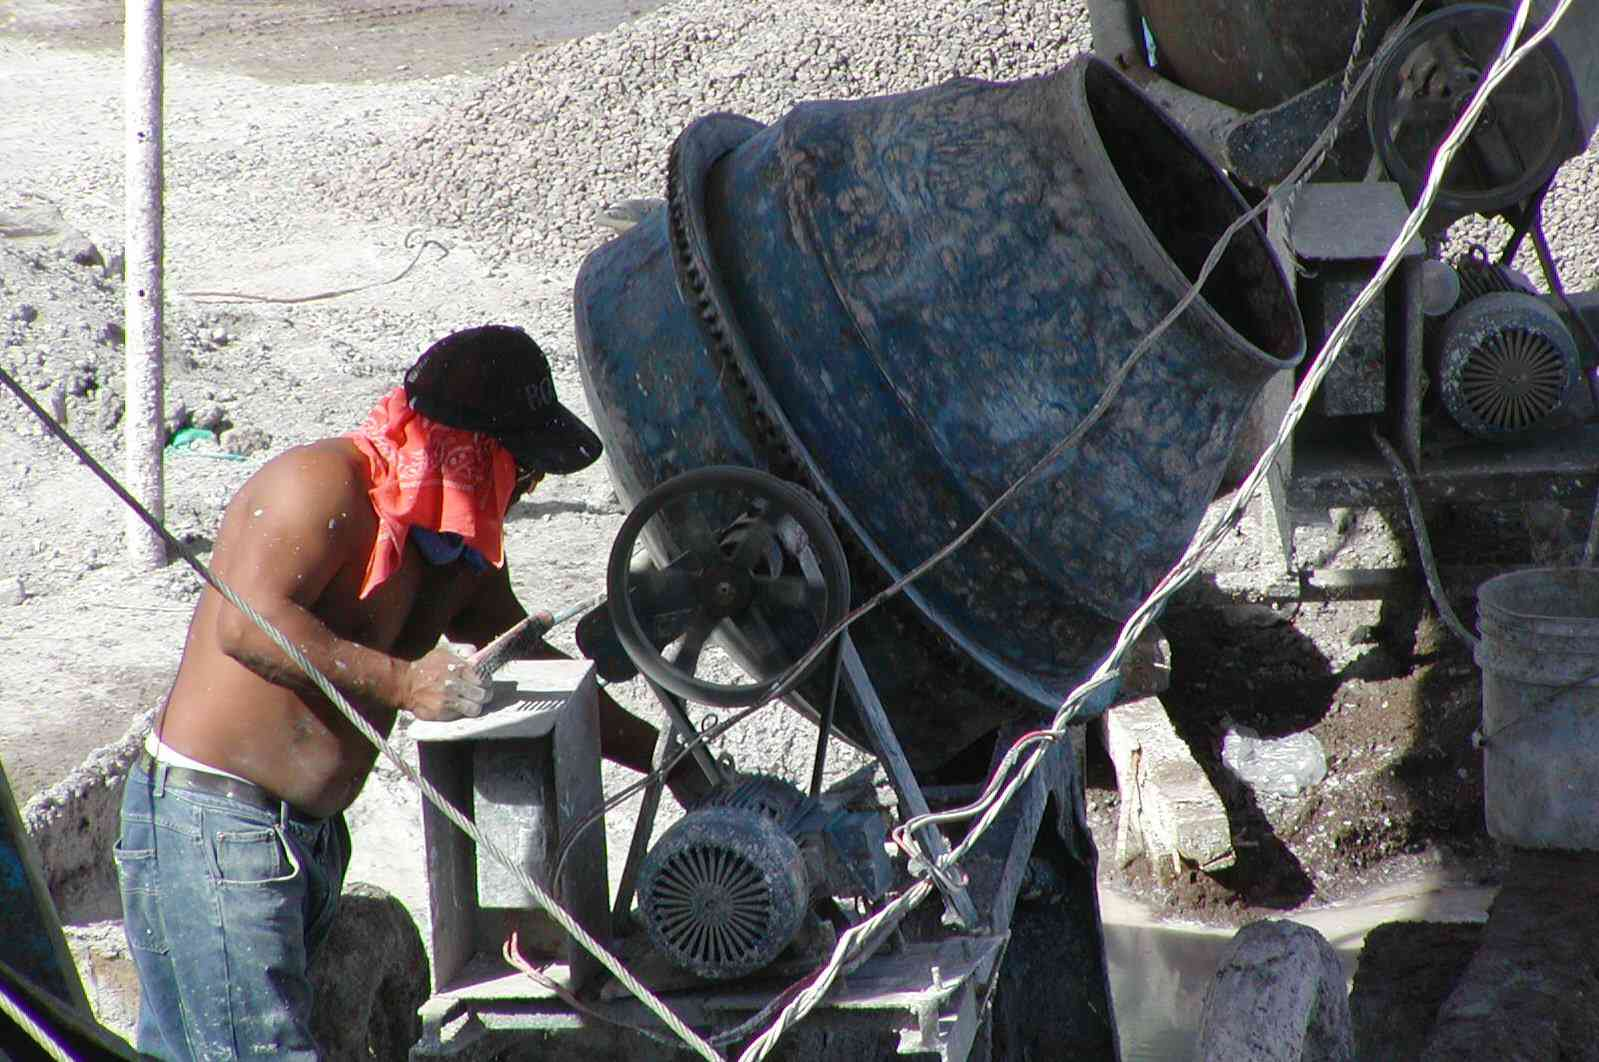 man in jeans without shirt, red scarf under hat, works a small, round, cement-mixer-type machine